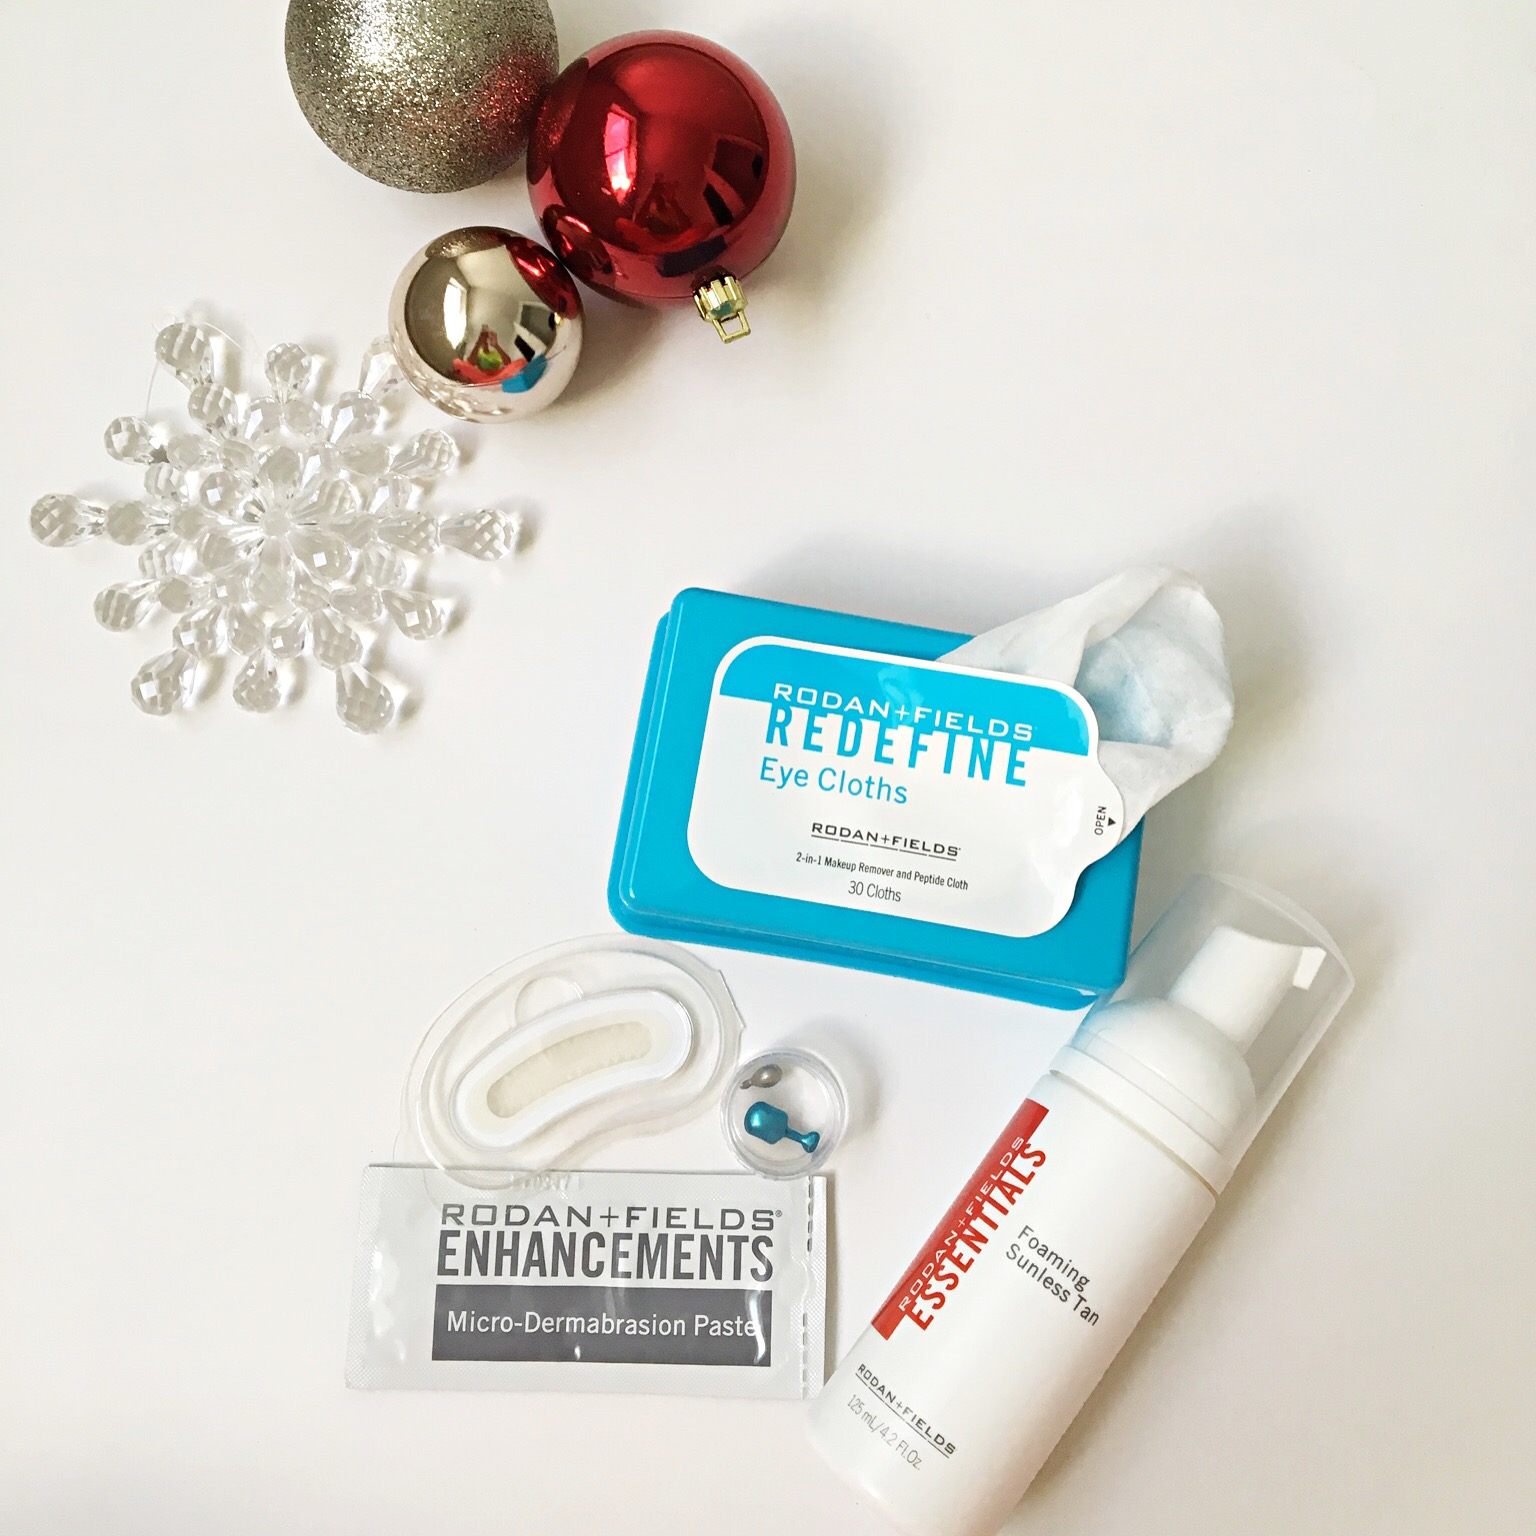 5 Tips For Great Holiday Skin with Rodan + Fields